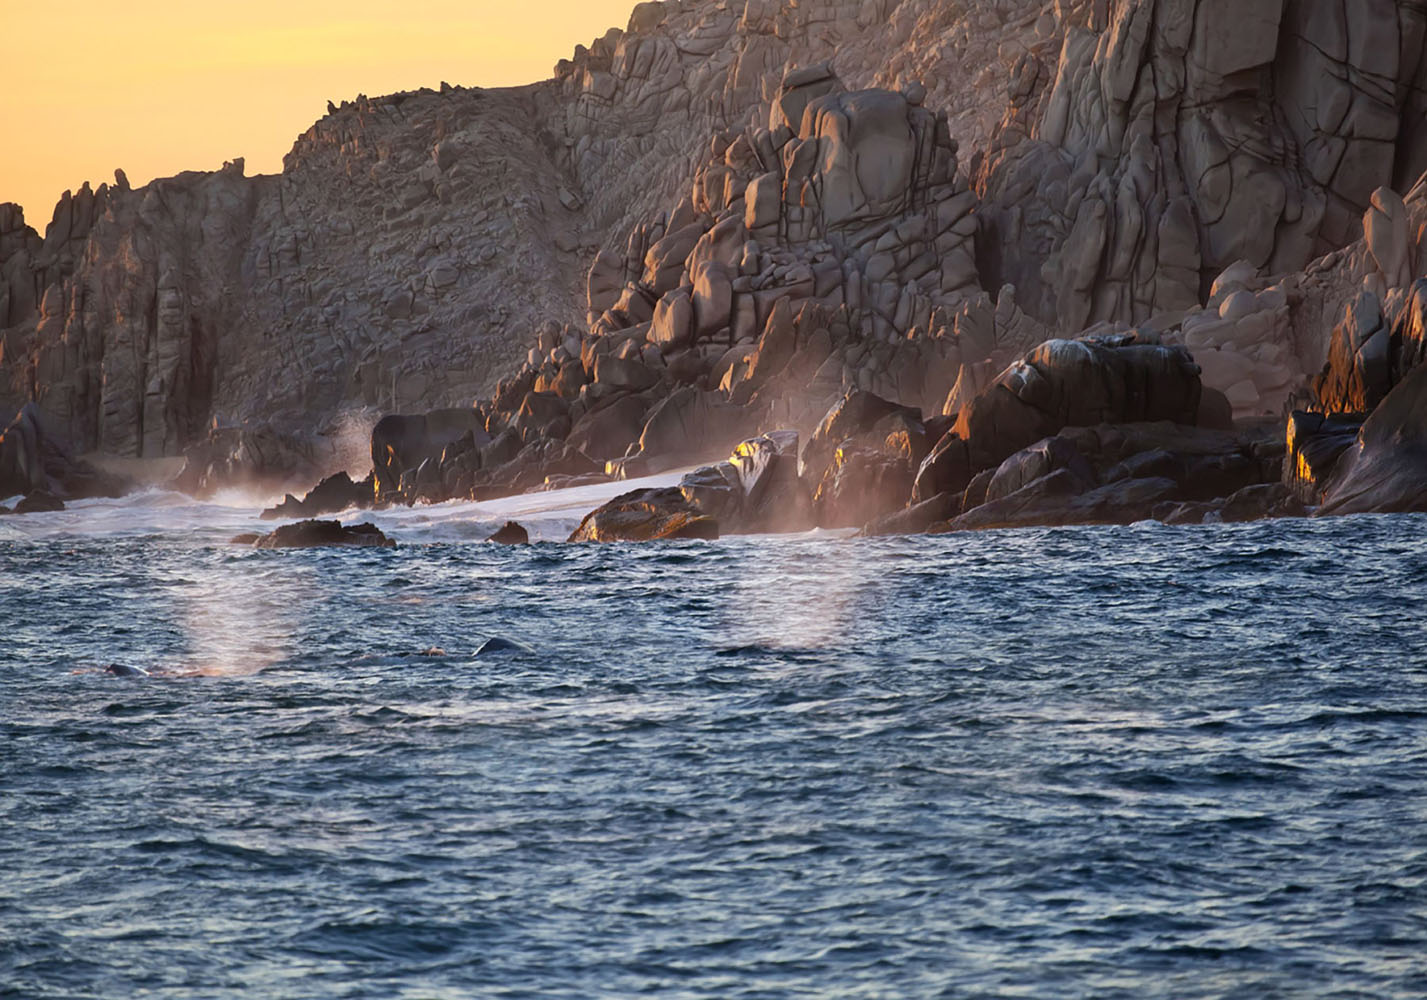 Go fishing or whale watching in Cabo San Lucas, Mexico and take in the beautiful coastal scenery.